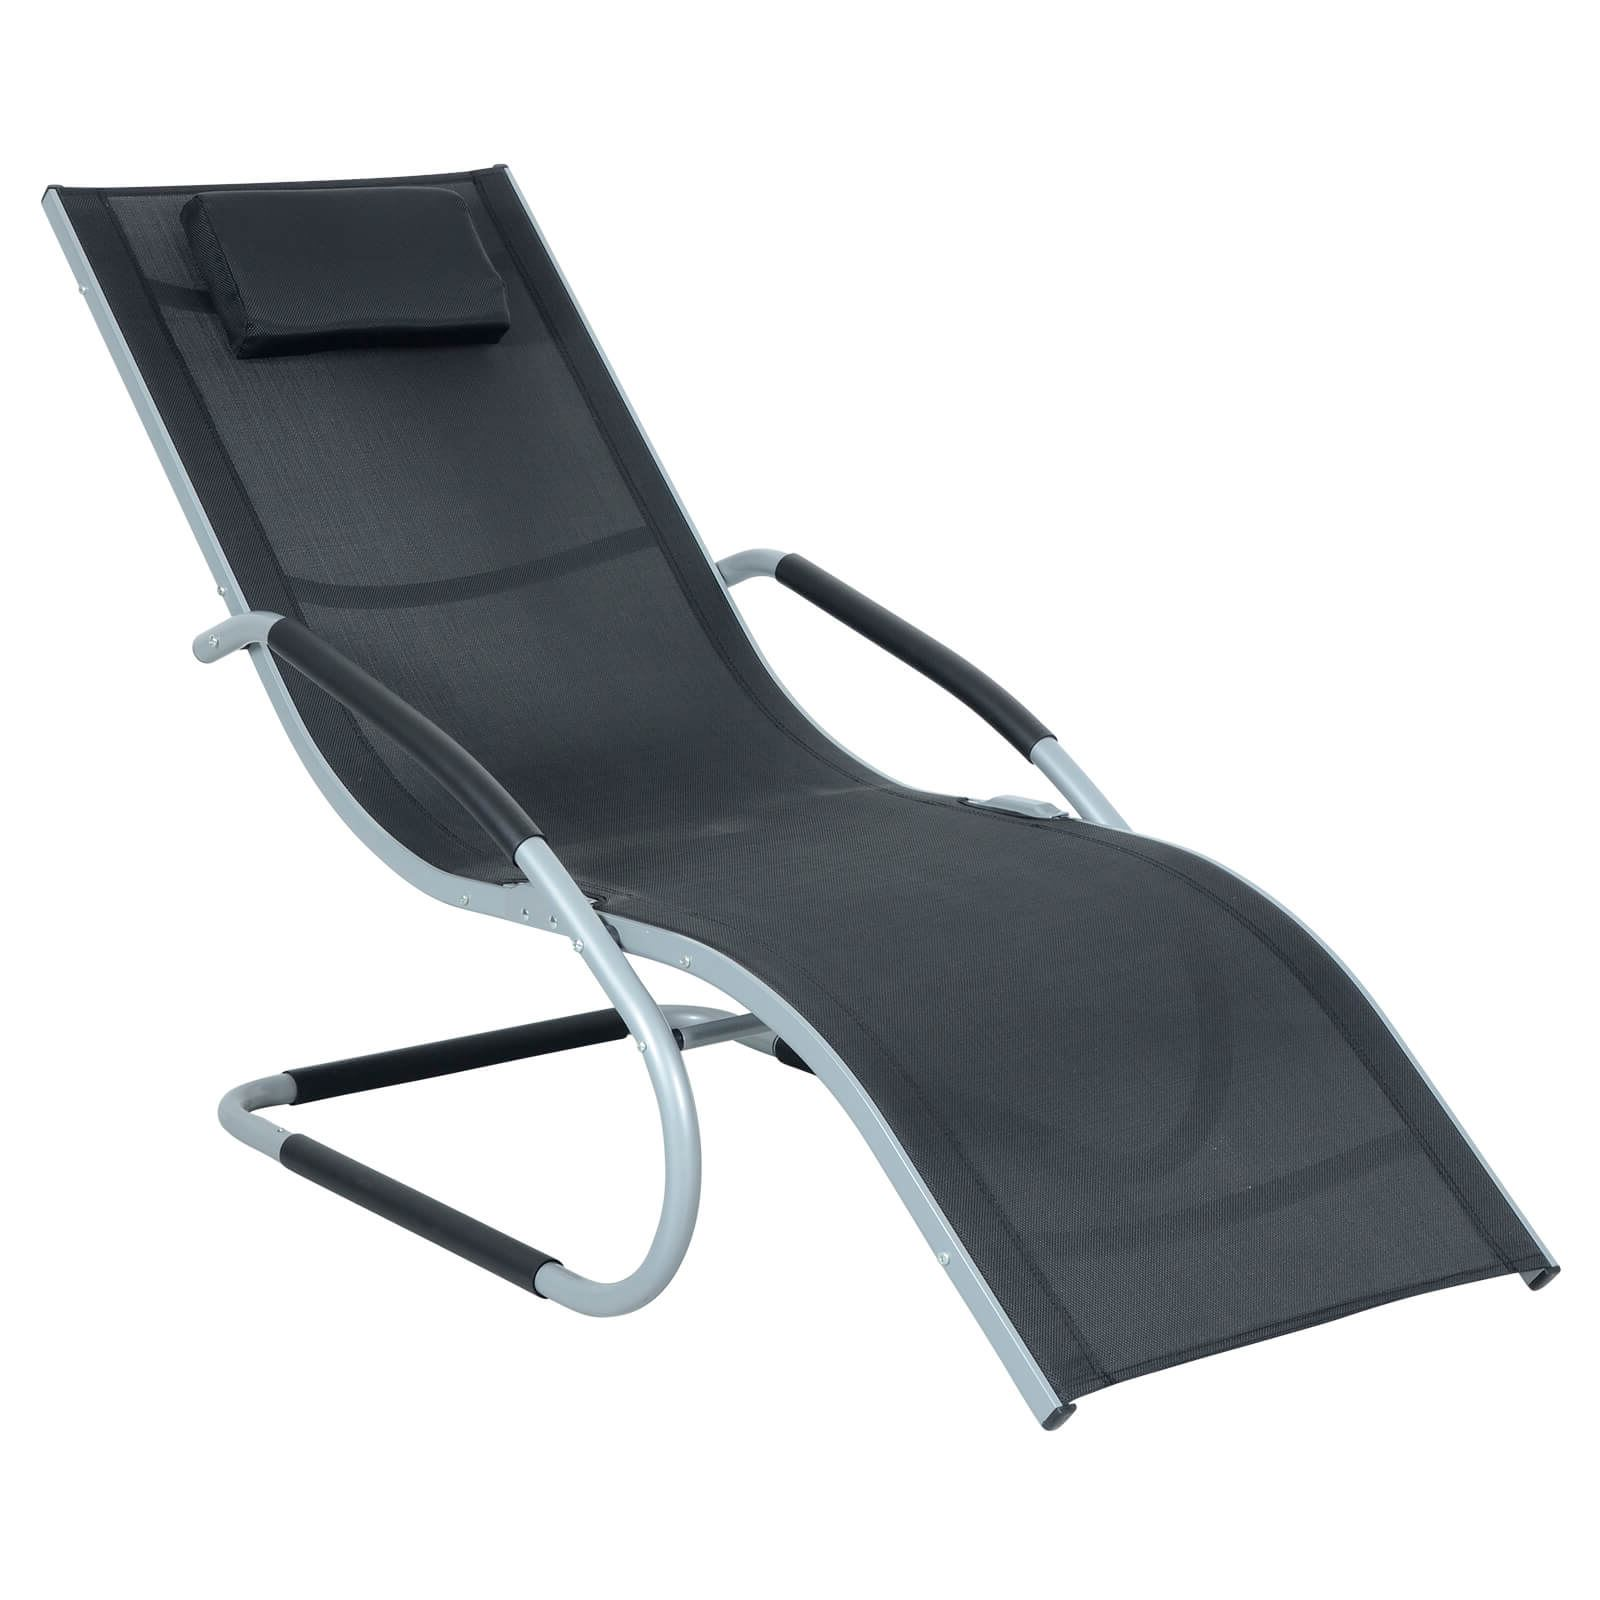 Sensational Details About Infinity Sun Lounger Azuma Outdoor Black Textilene Relaxer Chair Silver Frame Creativecarmelina Interior Chair Design Creativecarmelinacom